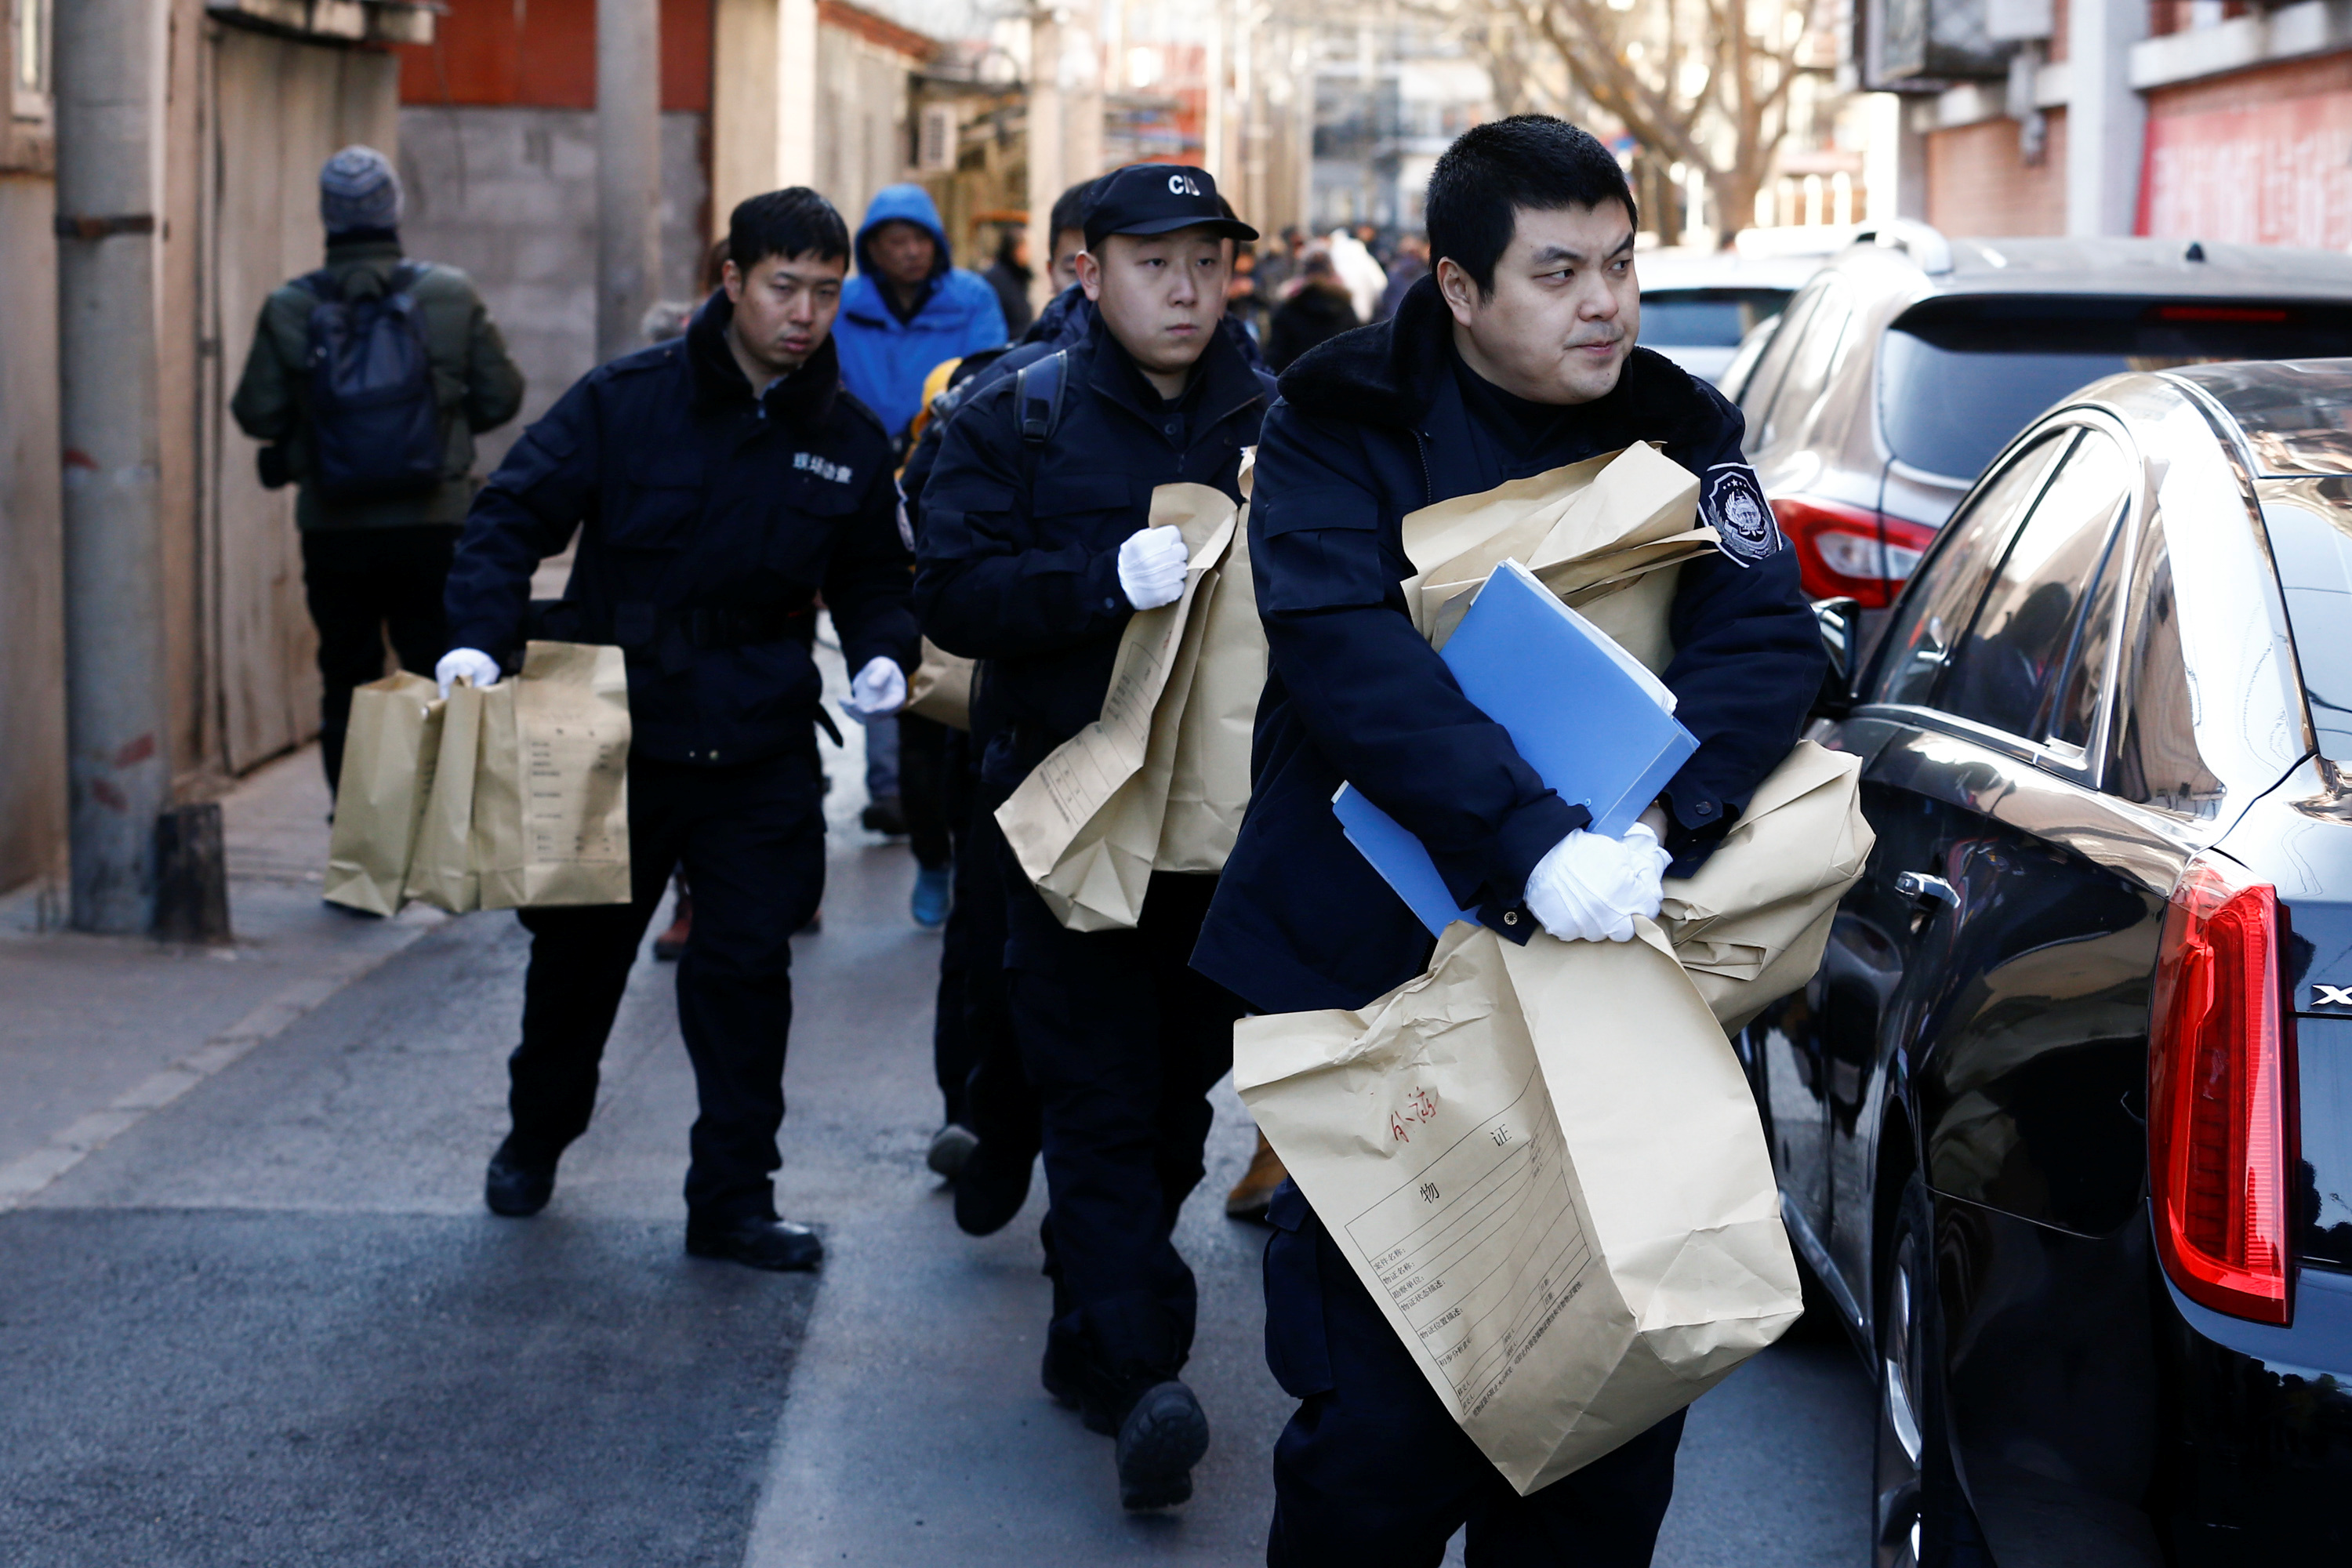 Police carry bags from a primary school that was the scene of a knife attack in Beijing, China, January 8, 2019. REUTERS/Thomas Peter